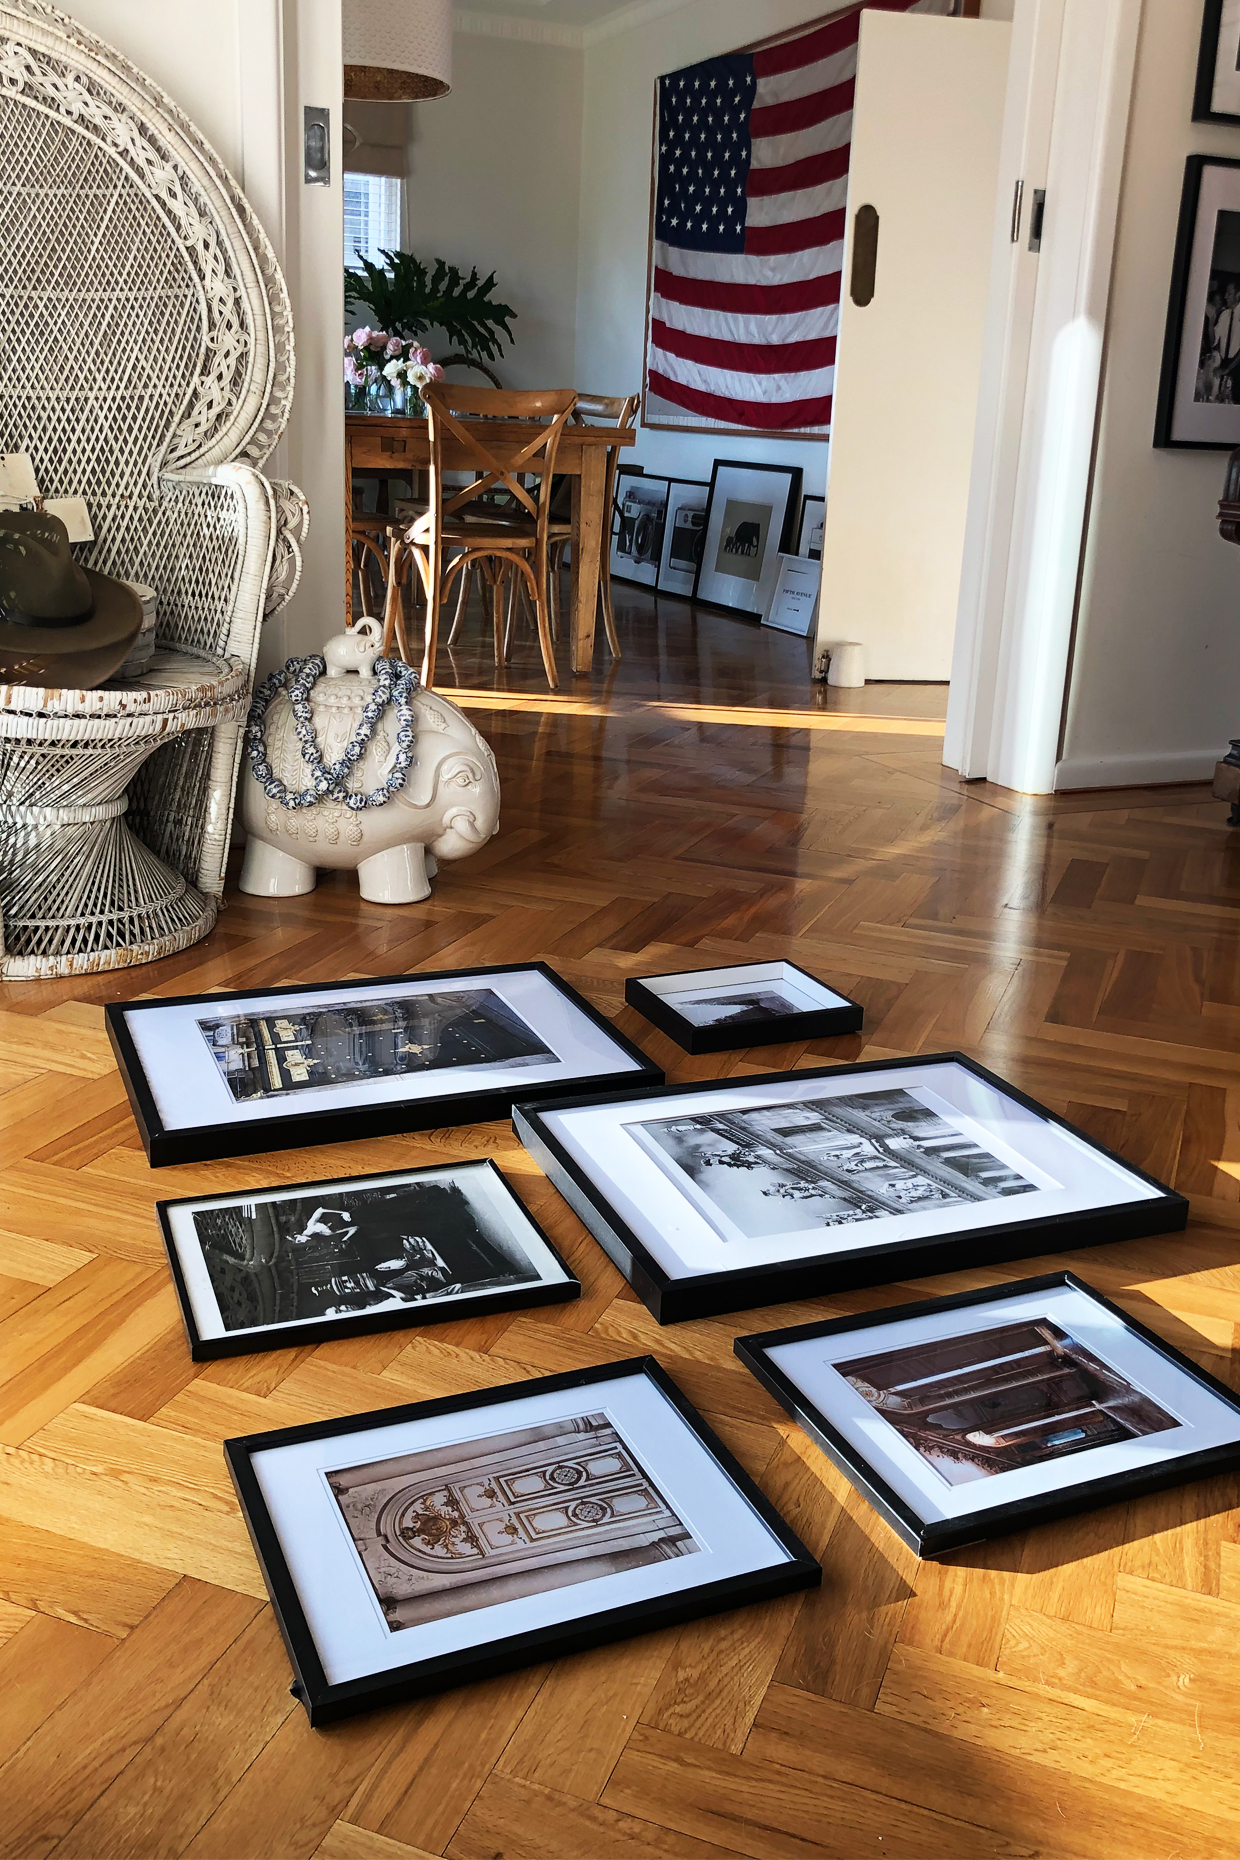 If you're not a stickler for professional-quality images then printing is as easy as a trip to  Office Works.  And frames don't have to cost a fortune either. These black frames are all from  Kmart  - they have no glass just an acetate gel which makes them super light and easy to hang.  My framed photos take me right back to those special Paris moments...now I just need to get around to hanging them.